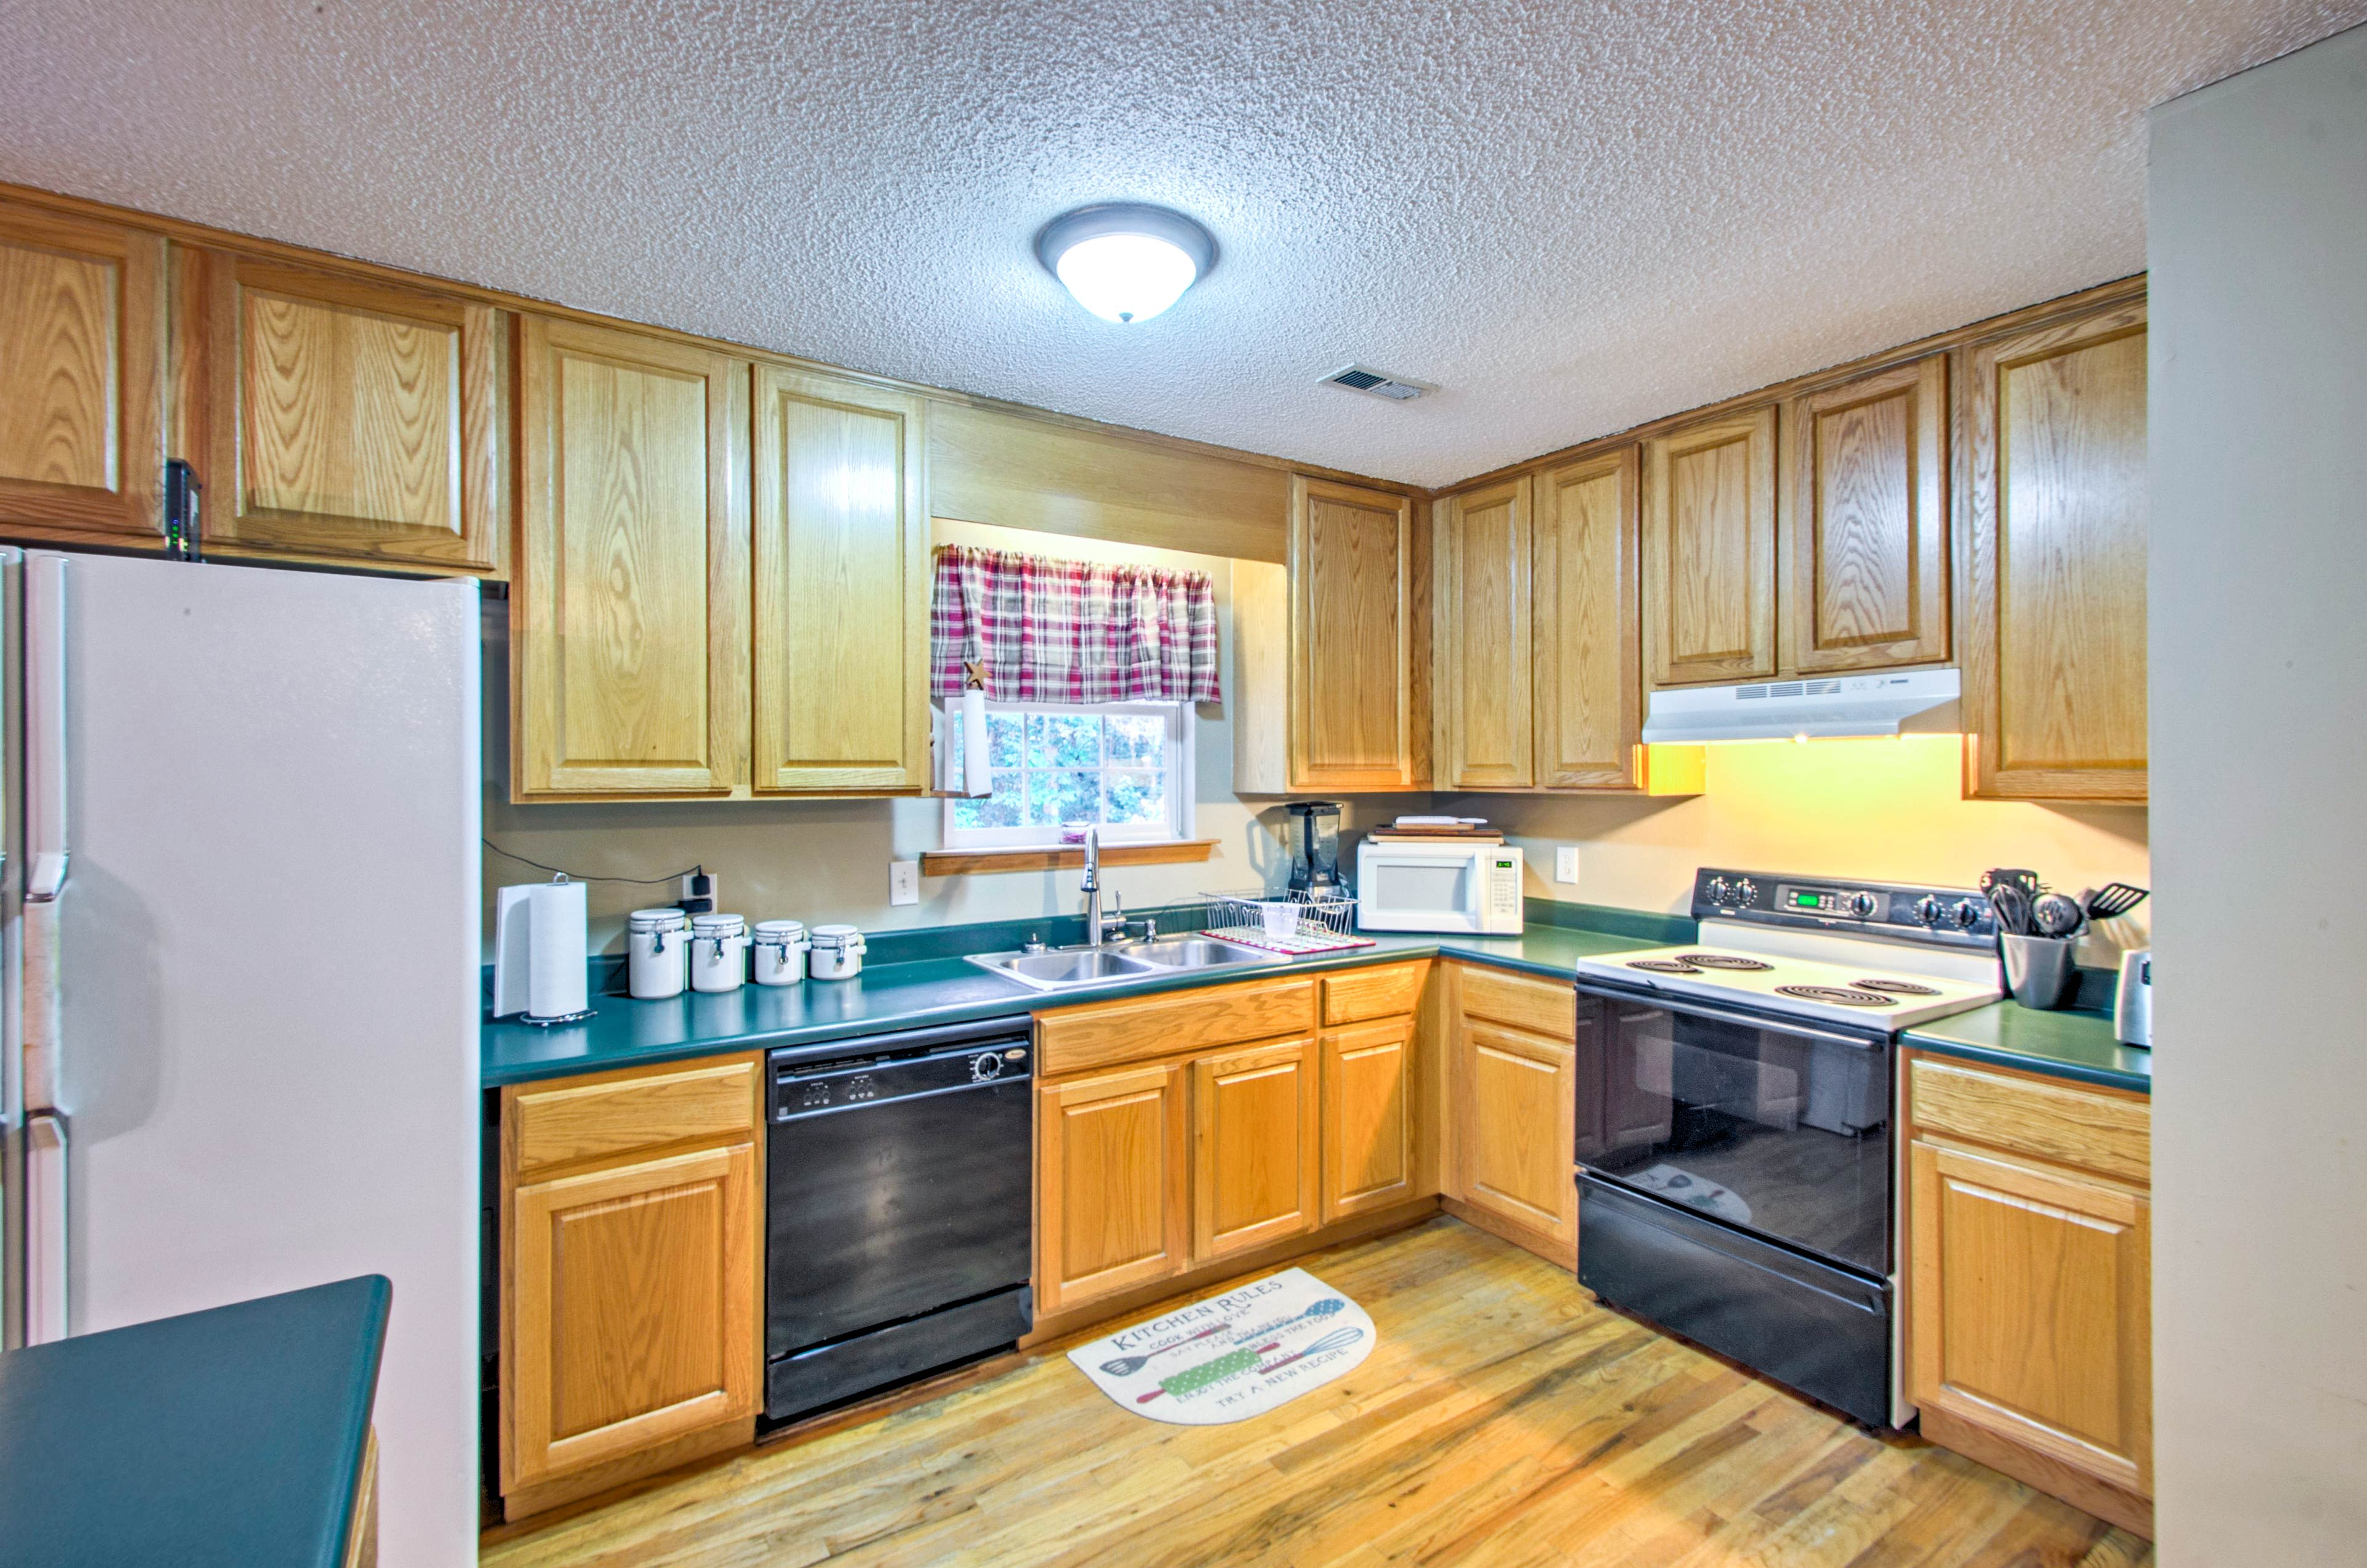 You'll find everything you need in the fully equipped kitchen.